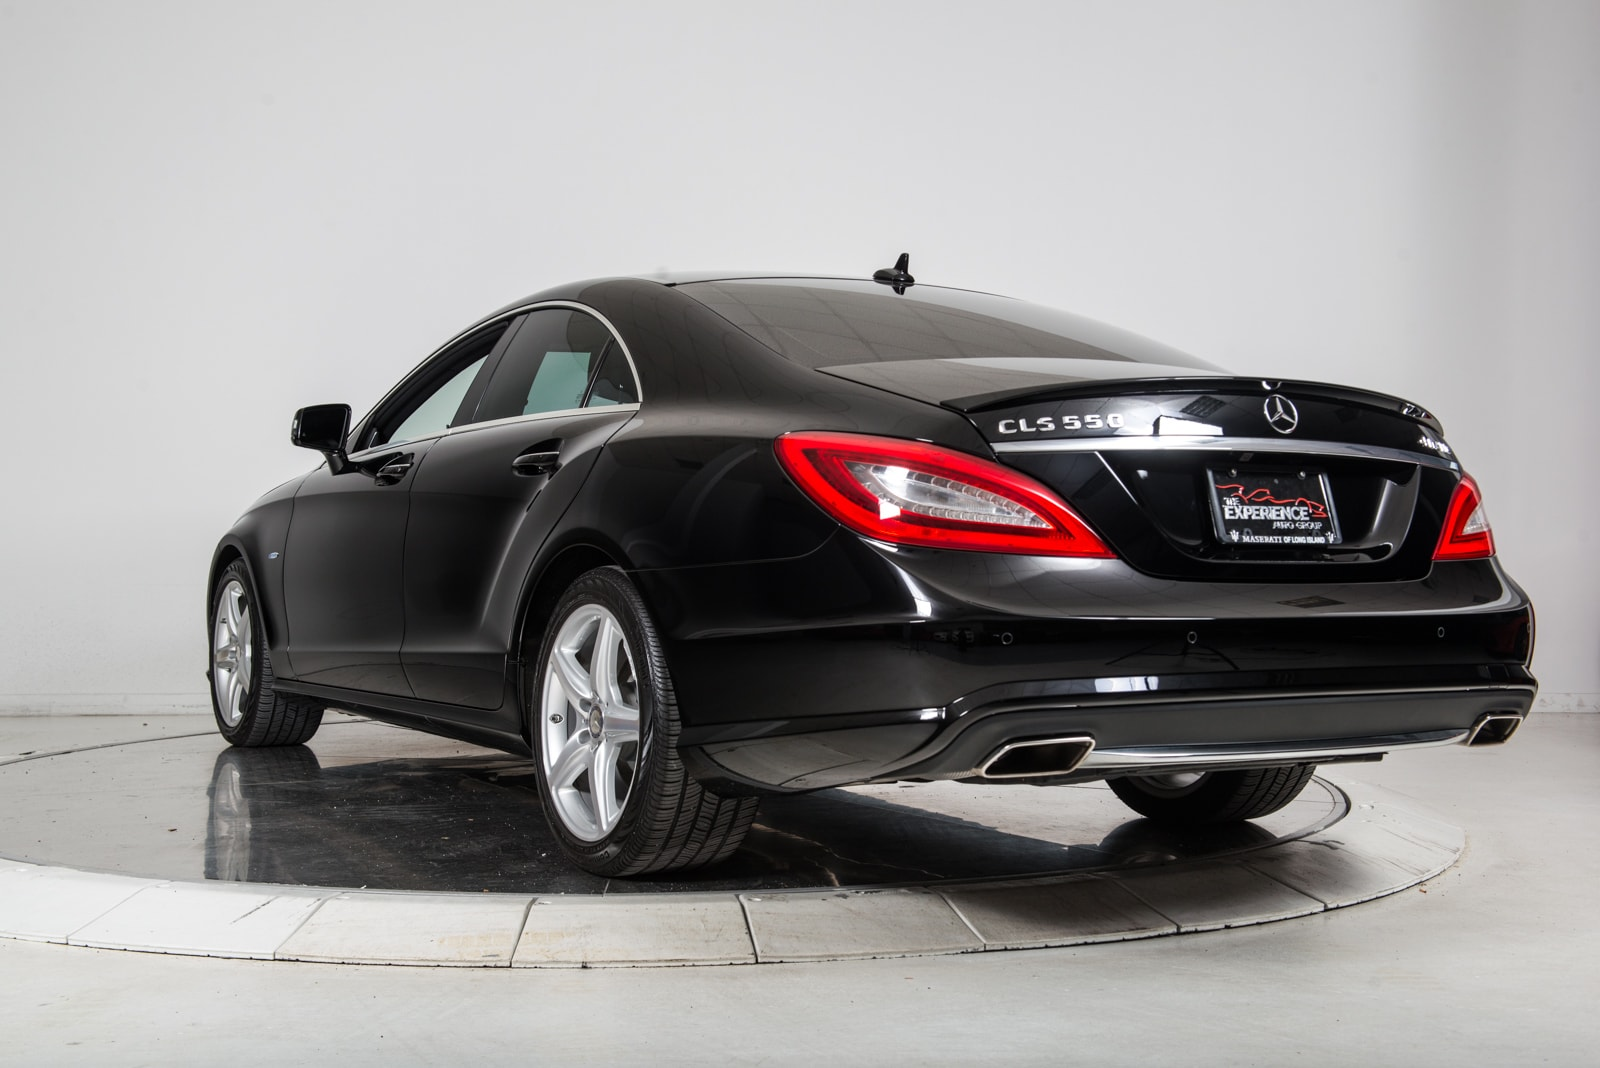 used 2012 mercedes benz cls550 4matic for sale plainview near long island ny vin. Black Bedroom Furniture Sets. Home Design Ideas